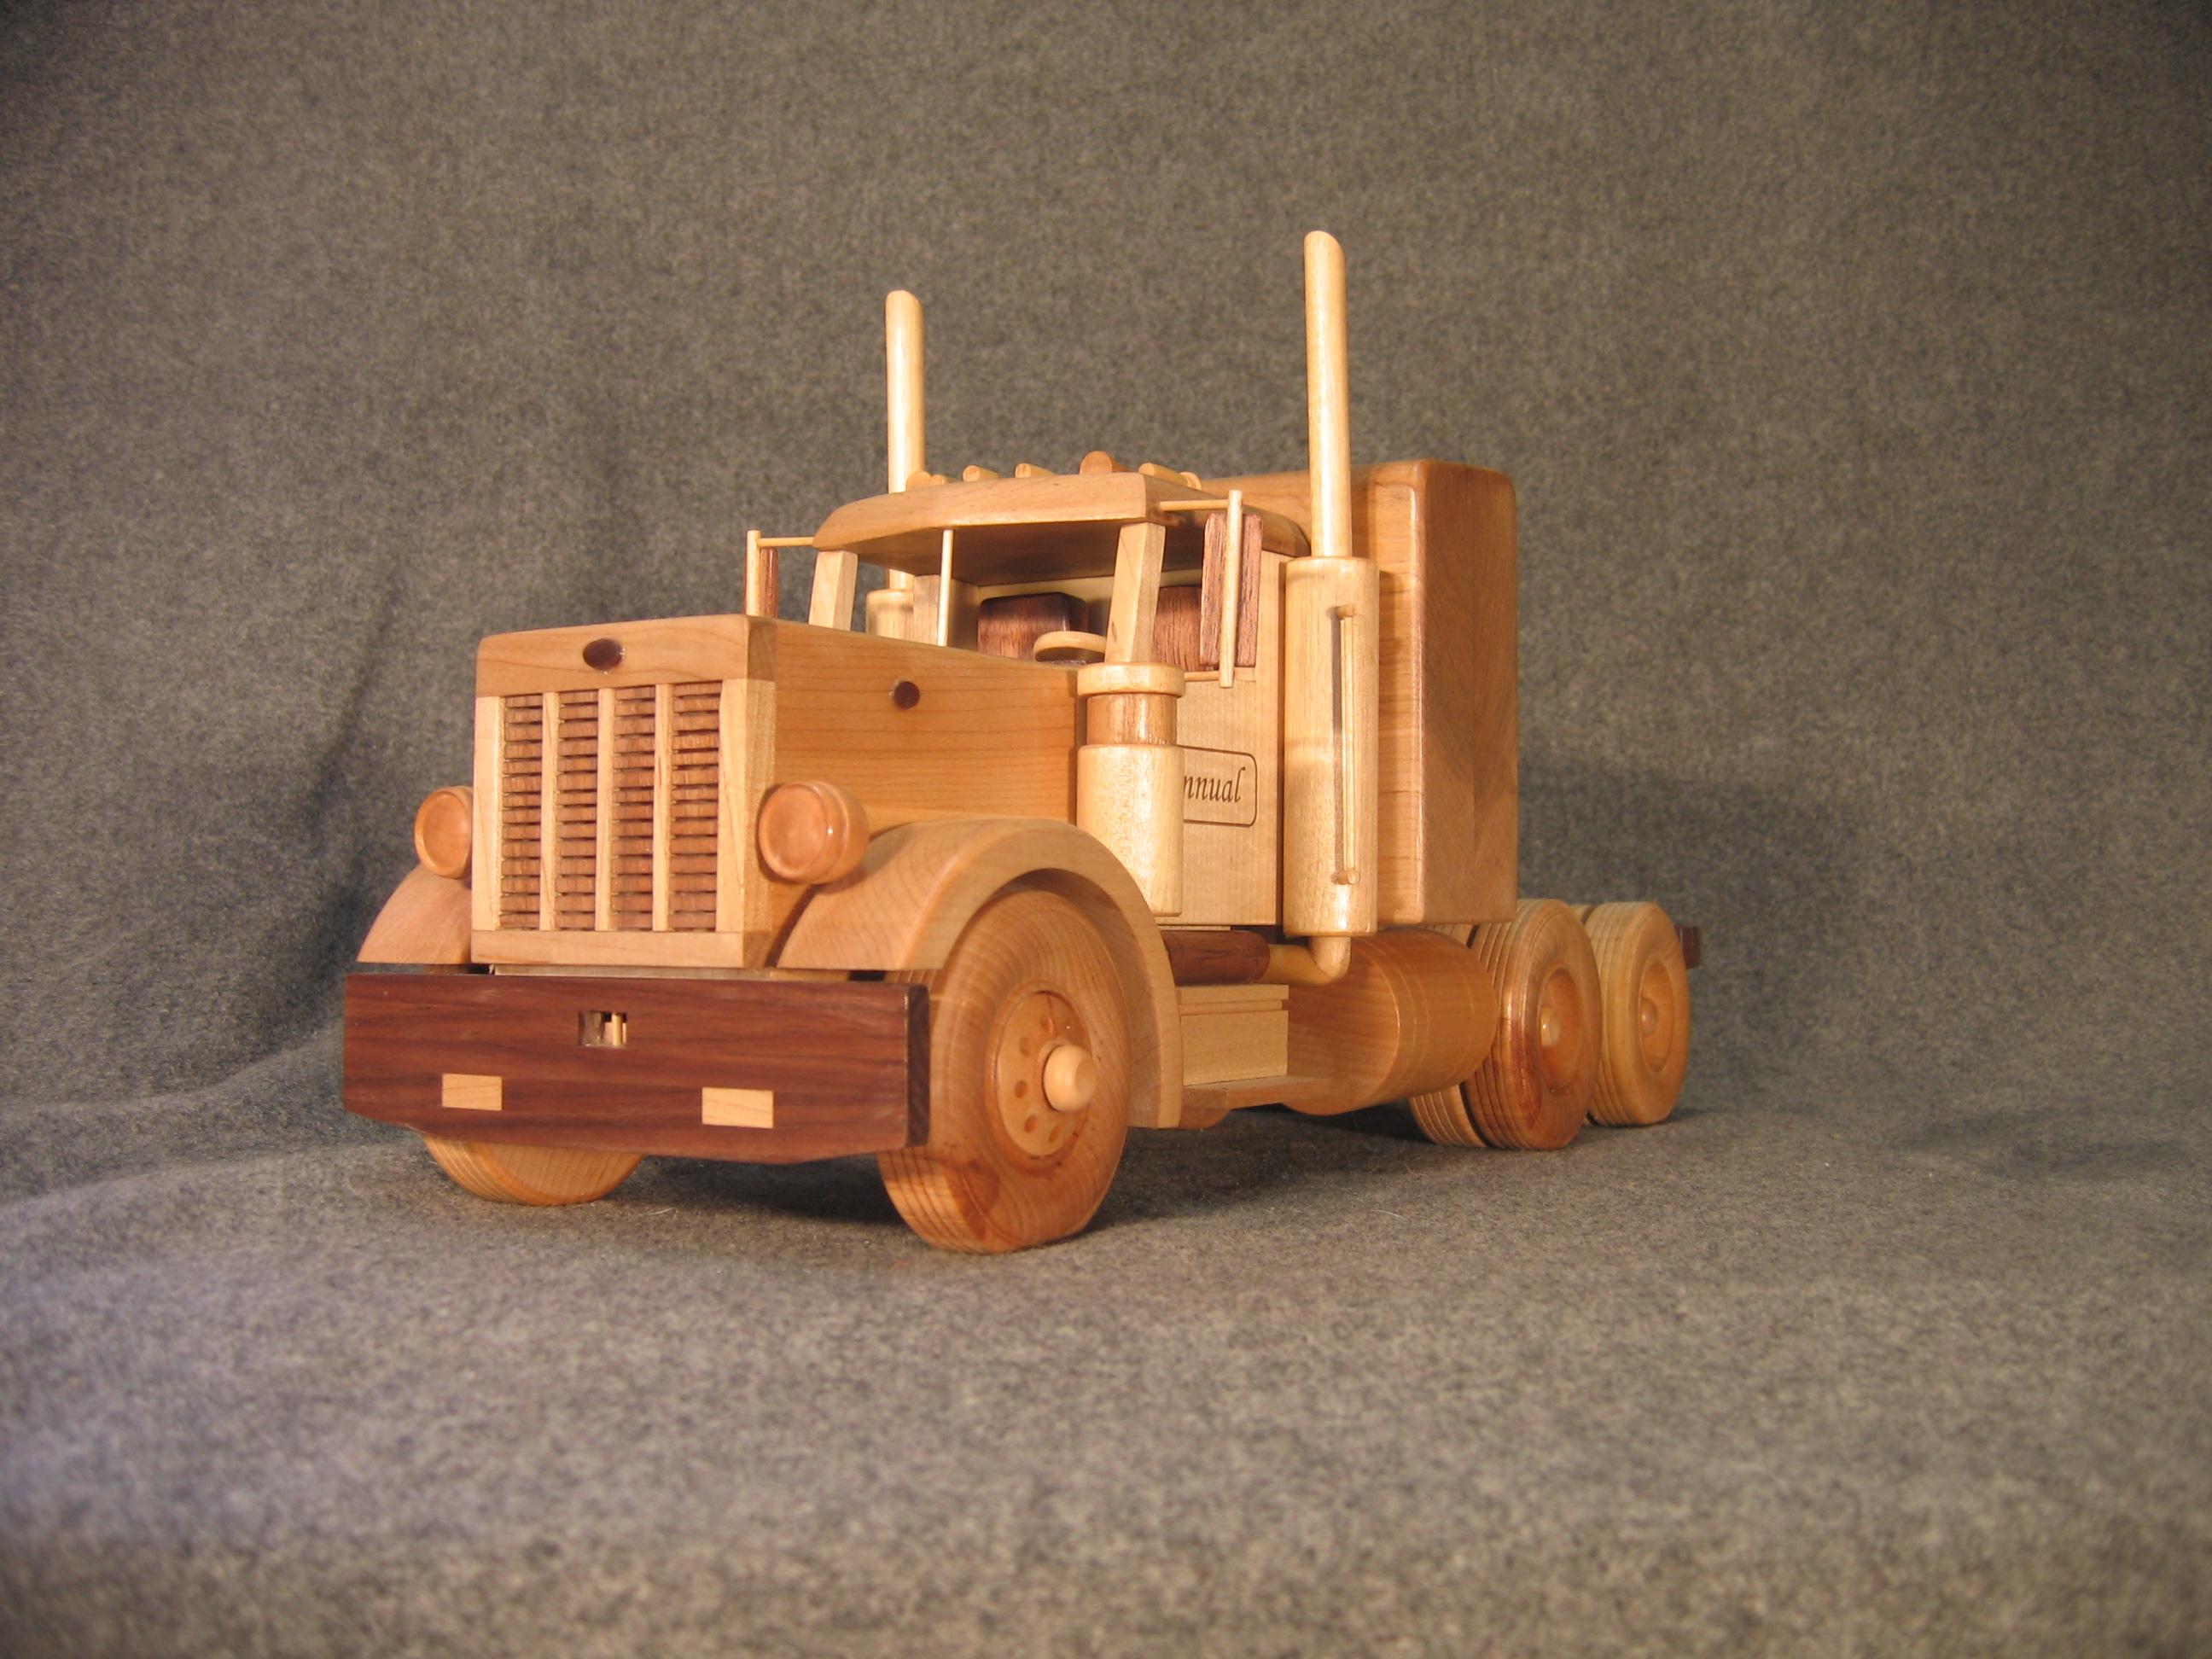 Wooden Trucks Toys And Joys : Toy wood trucks on pinterest wooden toys and